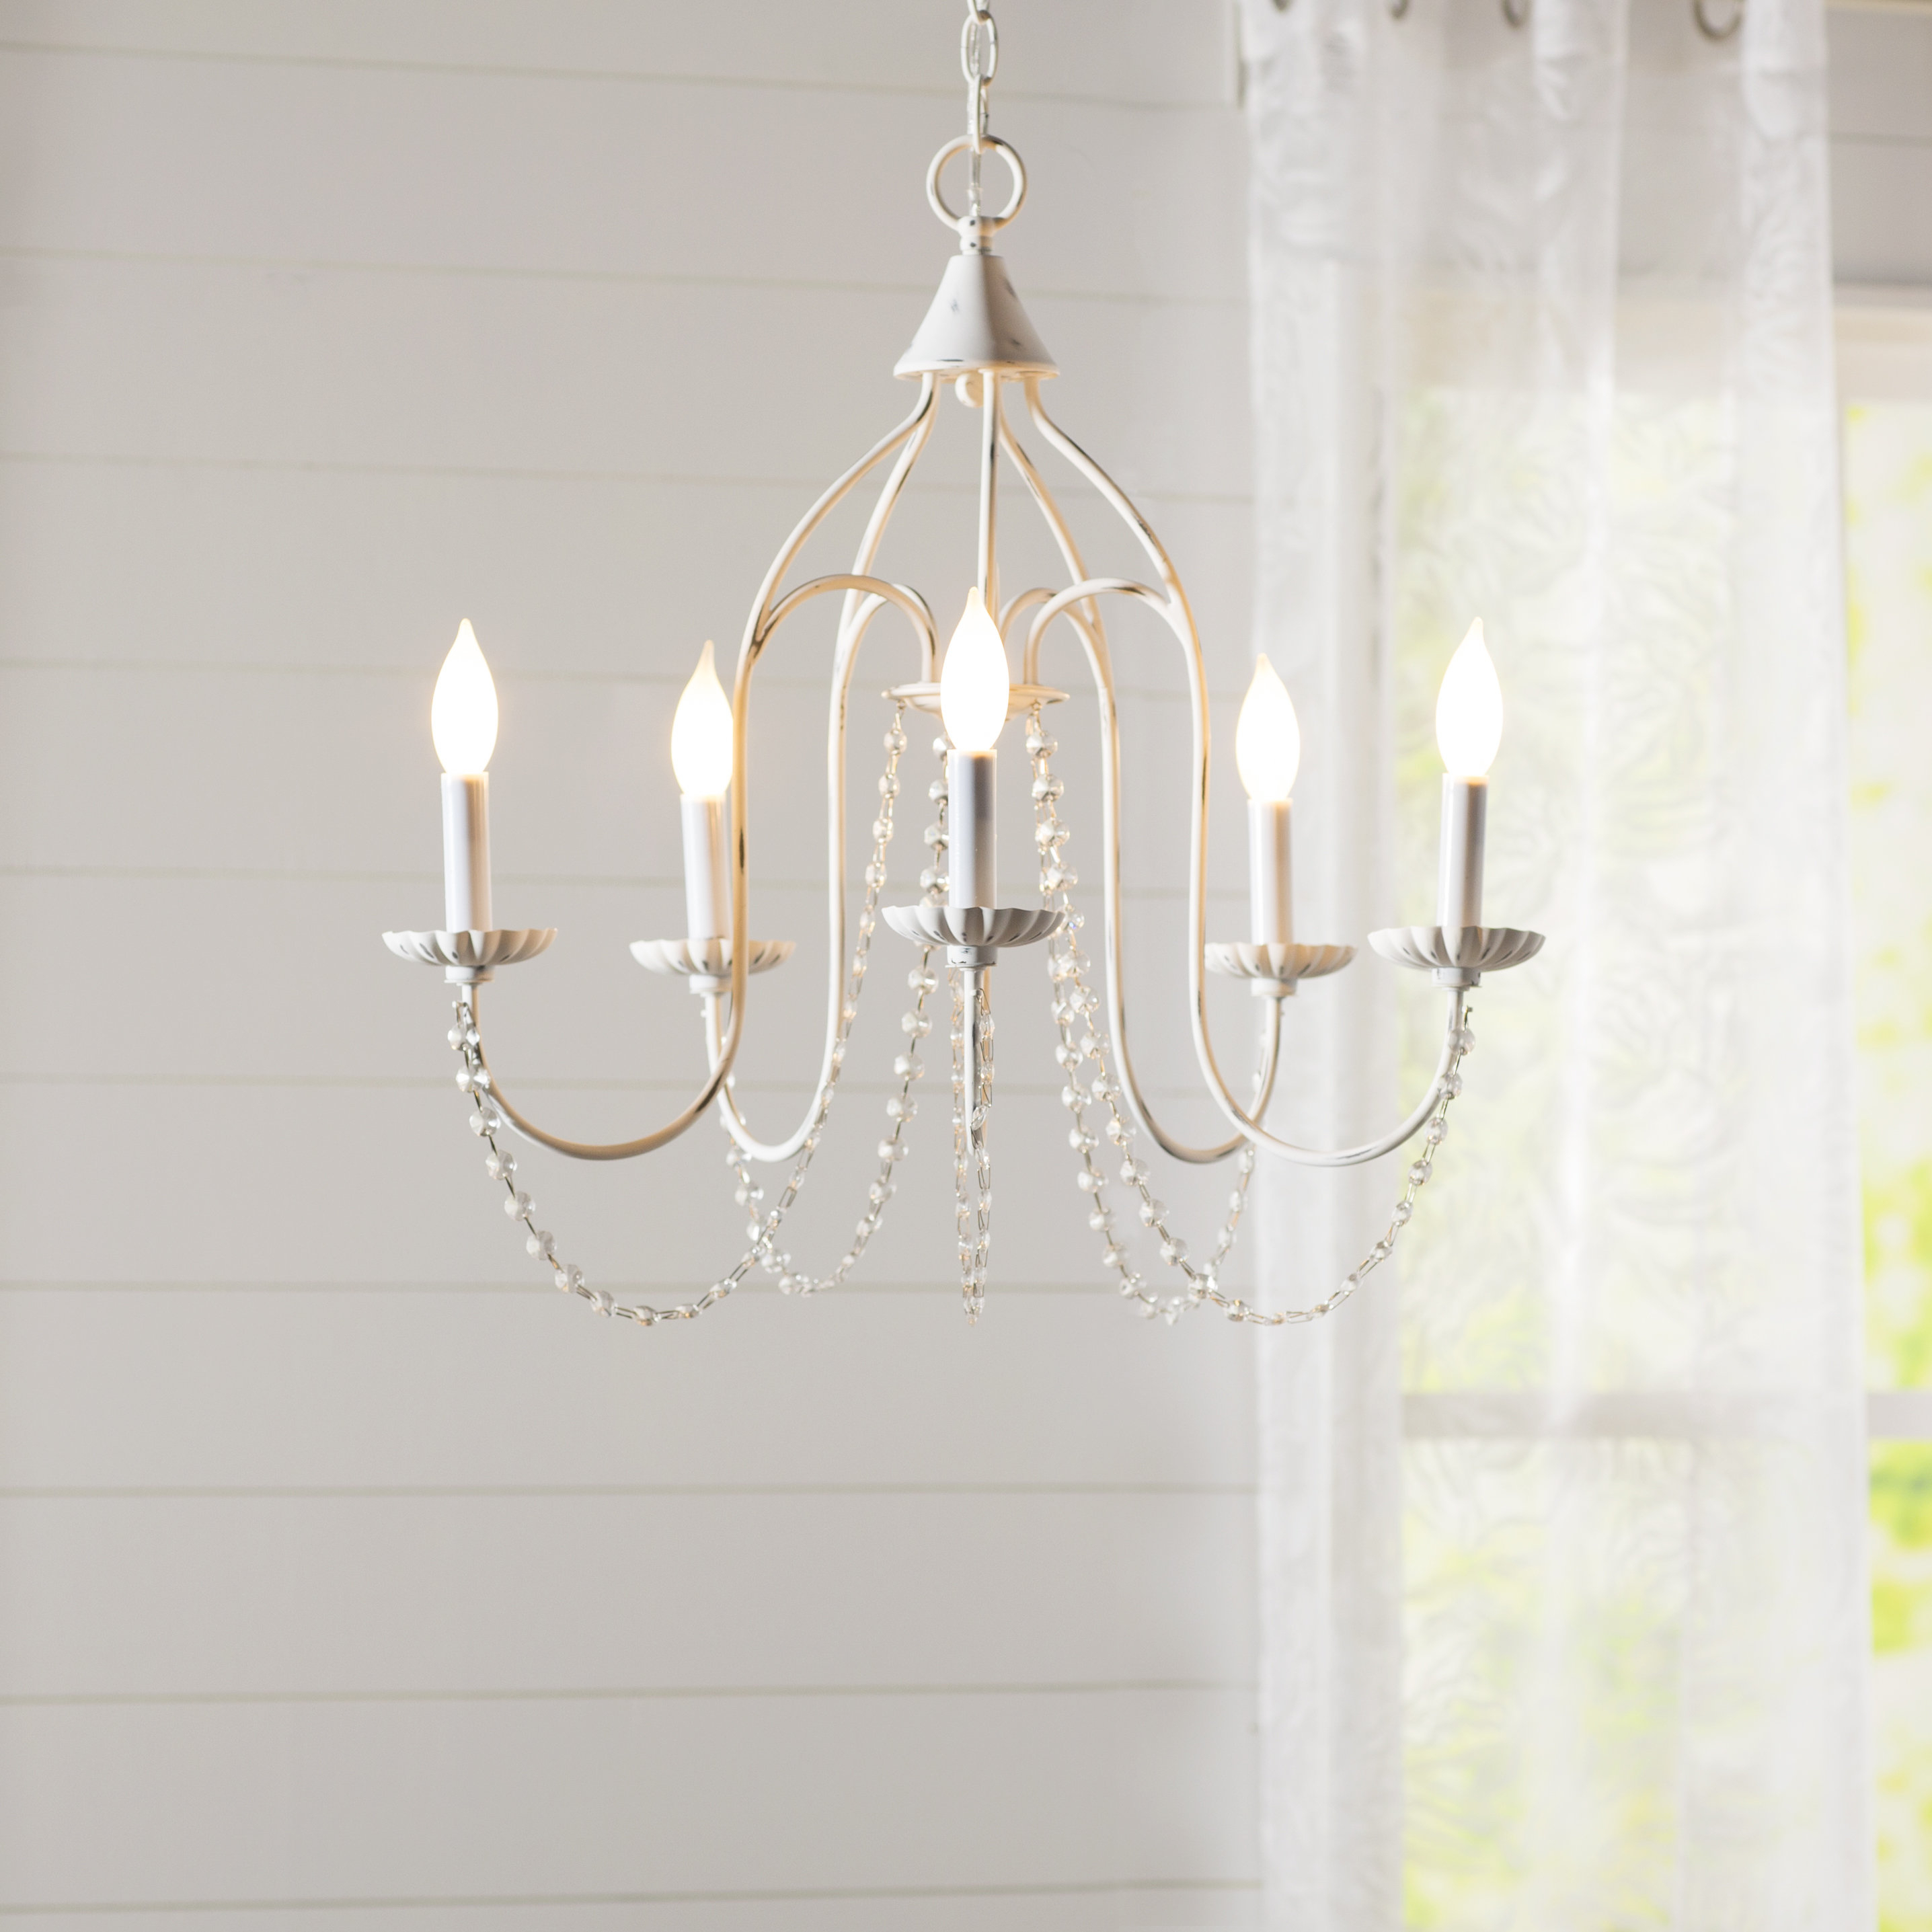 Florentina 5 Light Candle Style Chandelier In Berger 5 Light Candle Style Chandeliers (View 9 of 30)